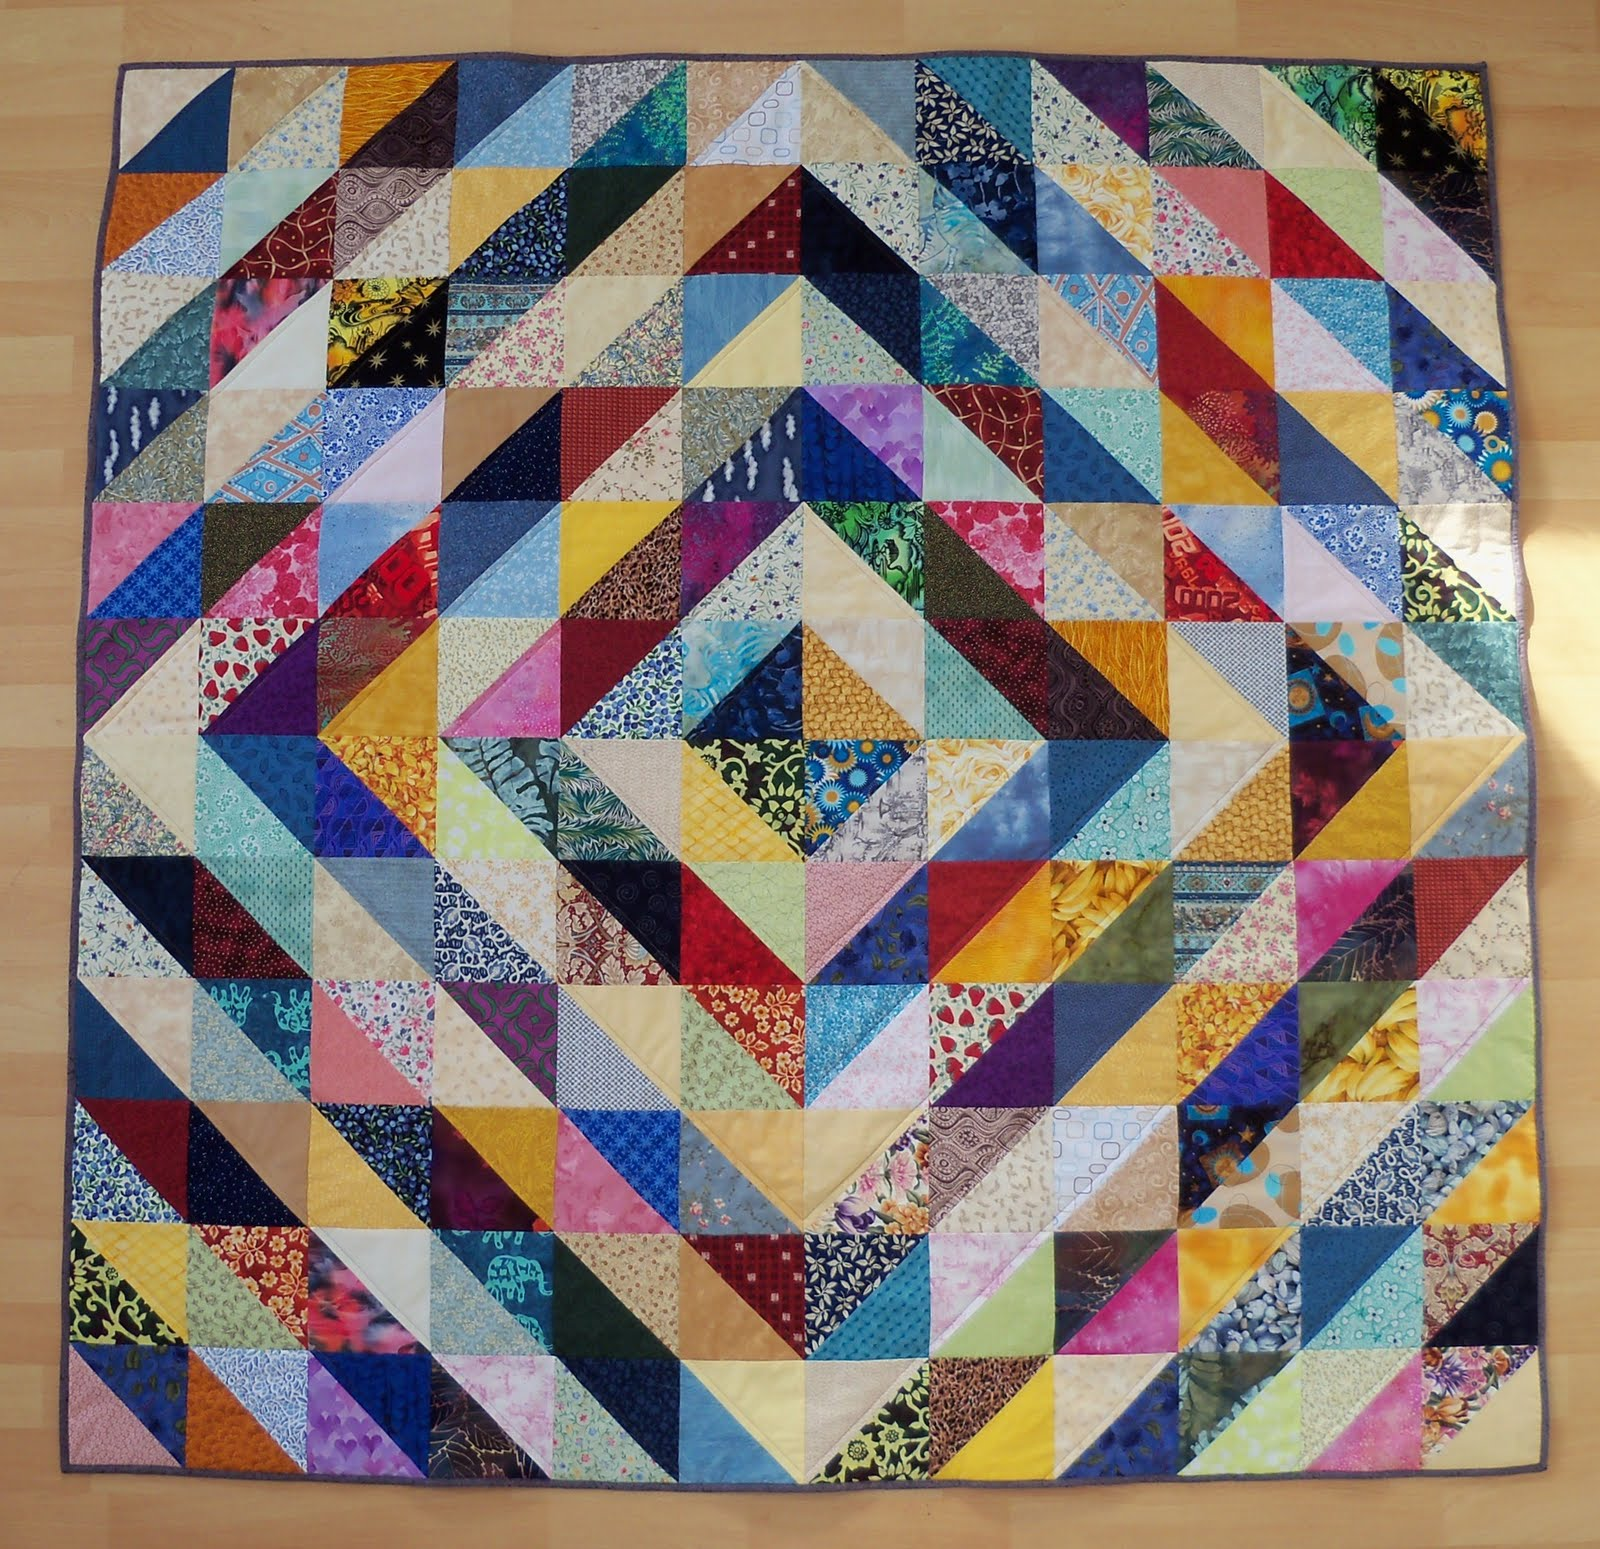 Quilt Designs With Triangles : Sew Lovely: Value Quilt - Half Square Triangles